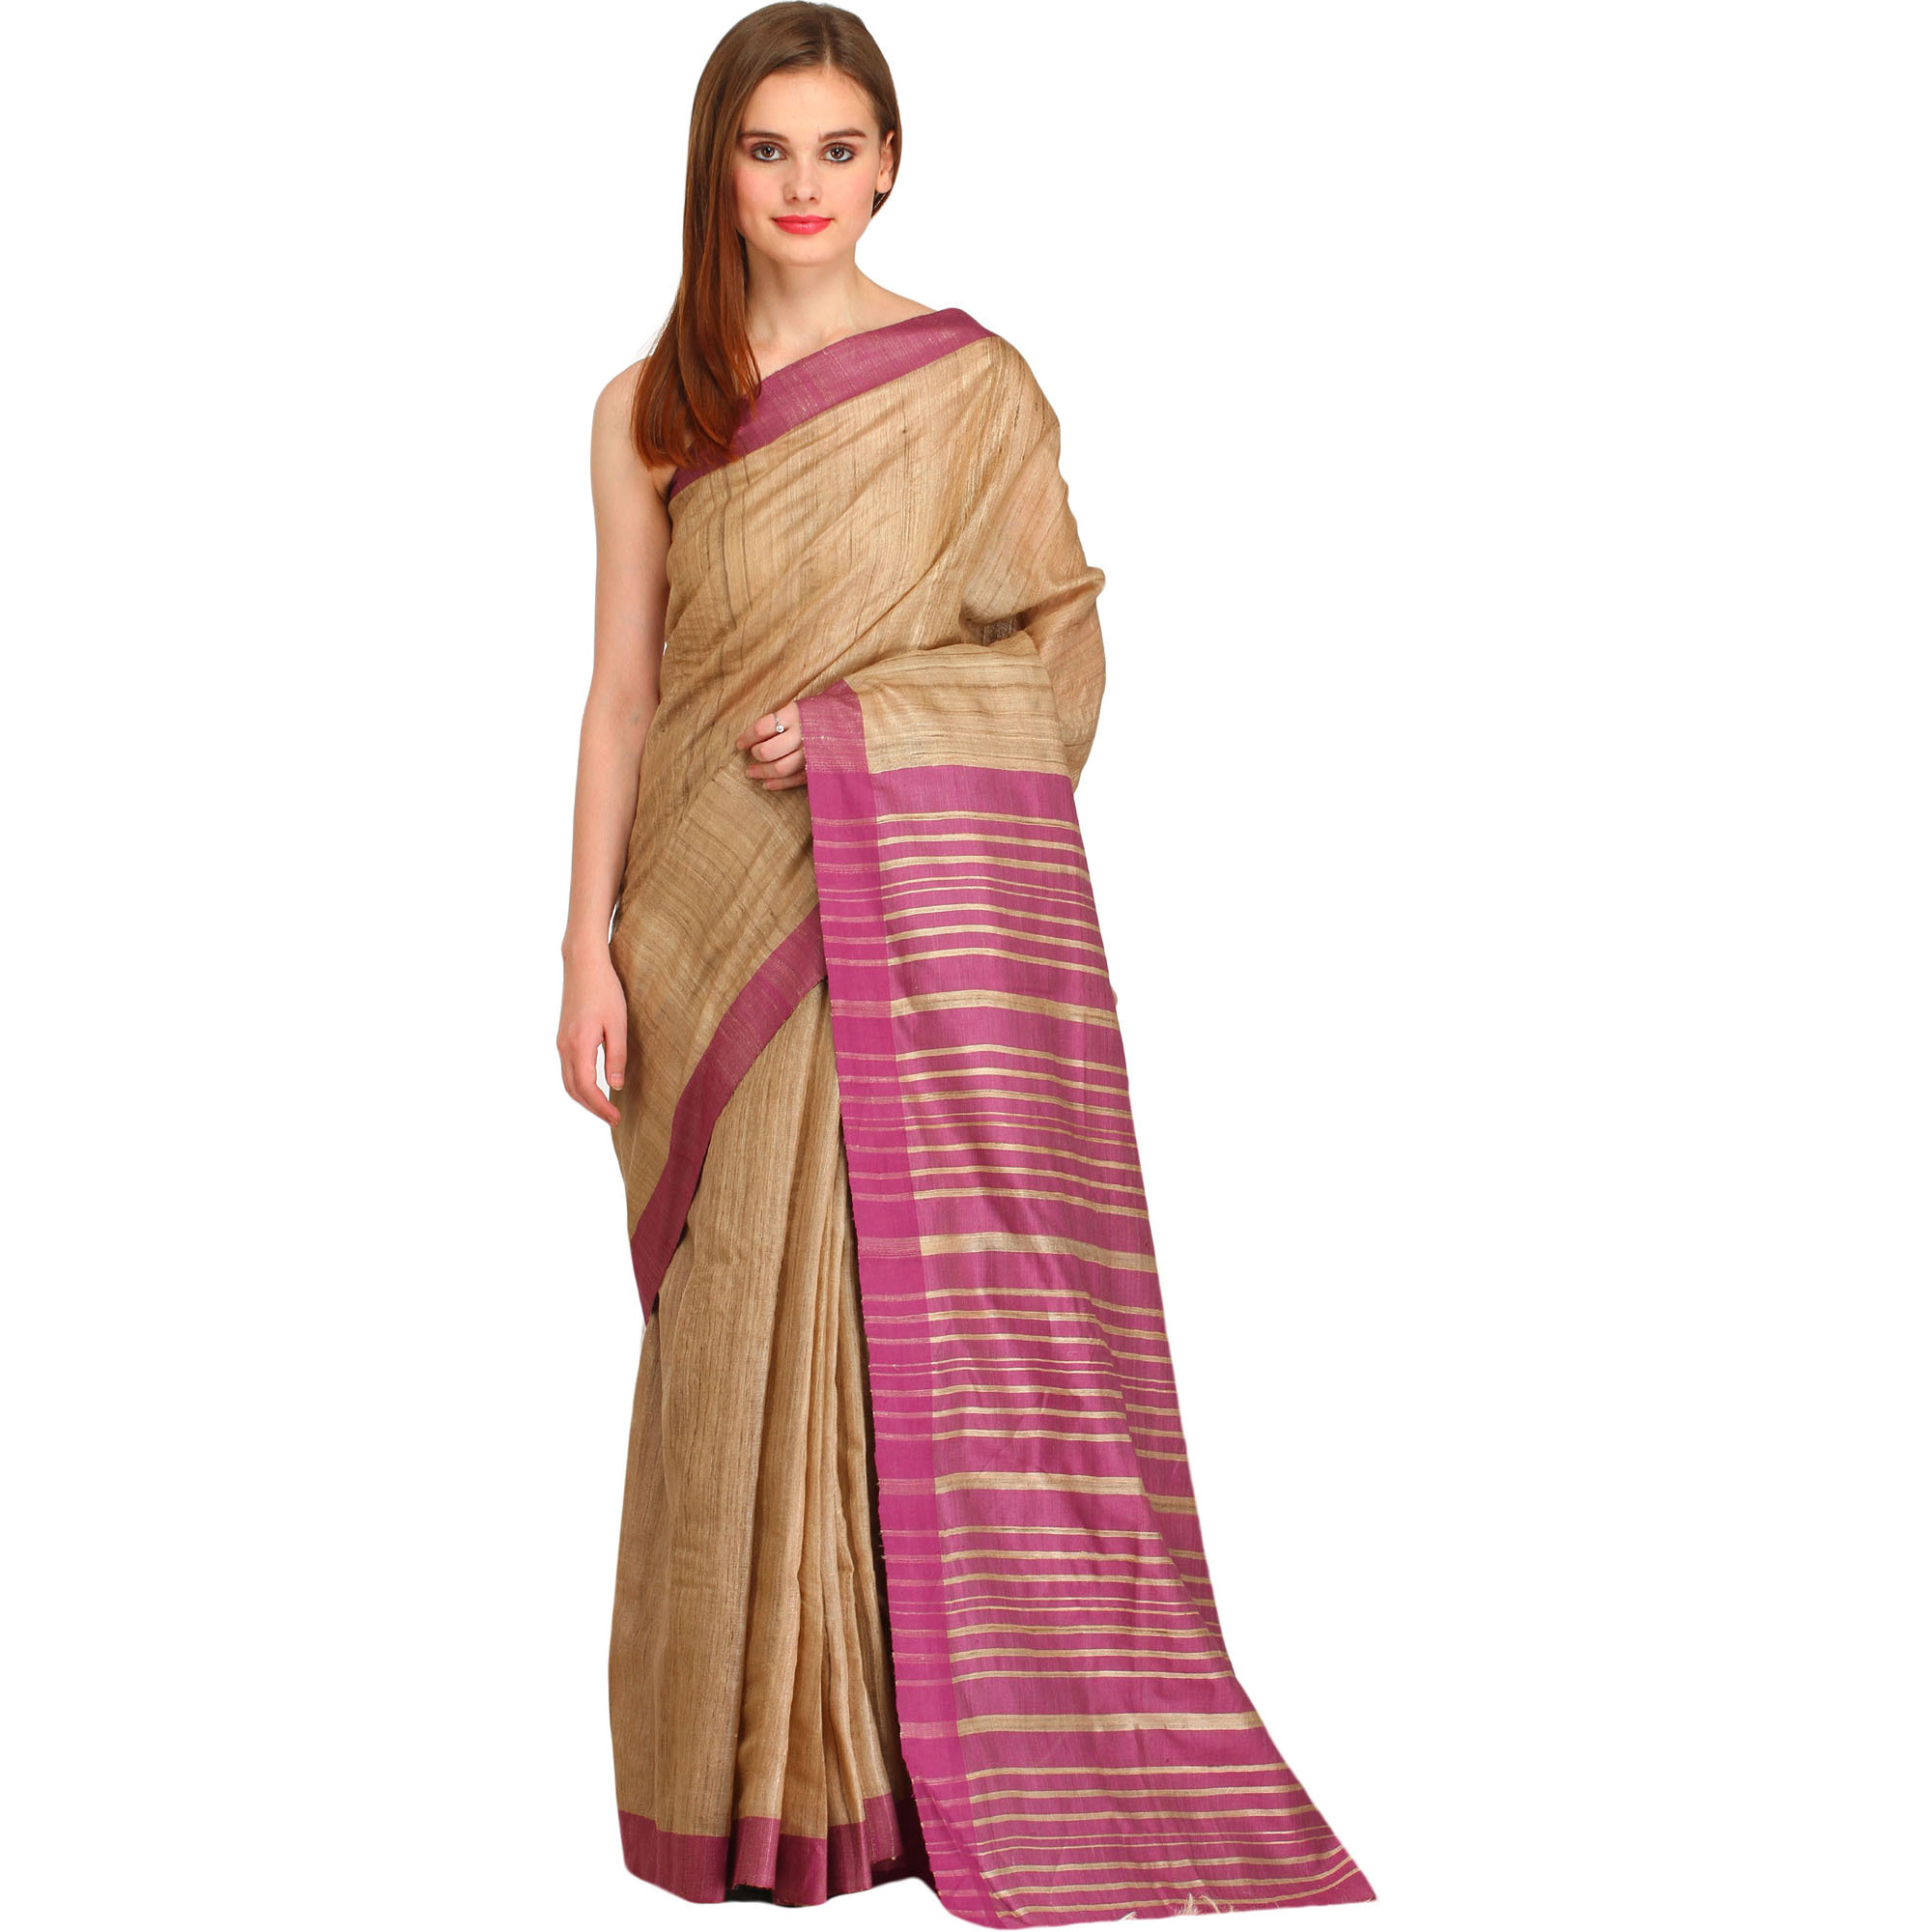 Light-Taupe and Tulipwood Kosa Sari from Bengal with Striped Pallu